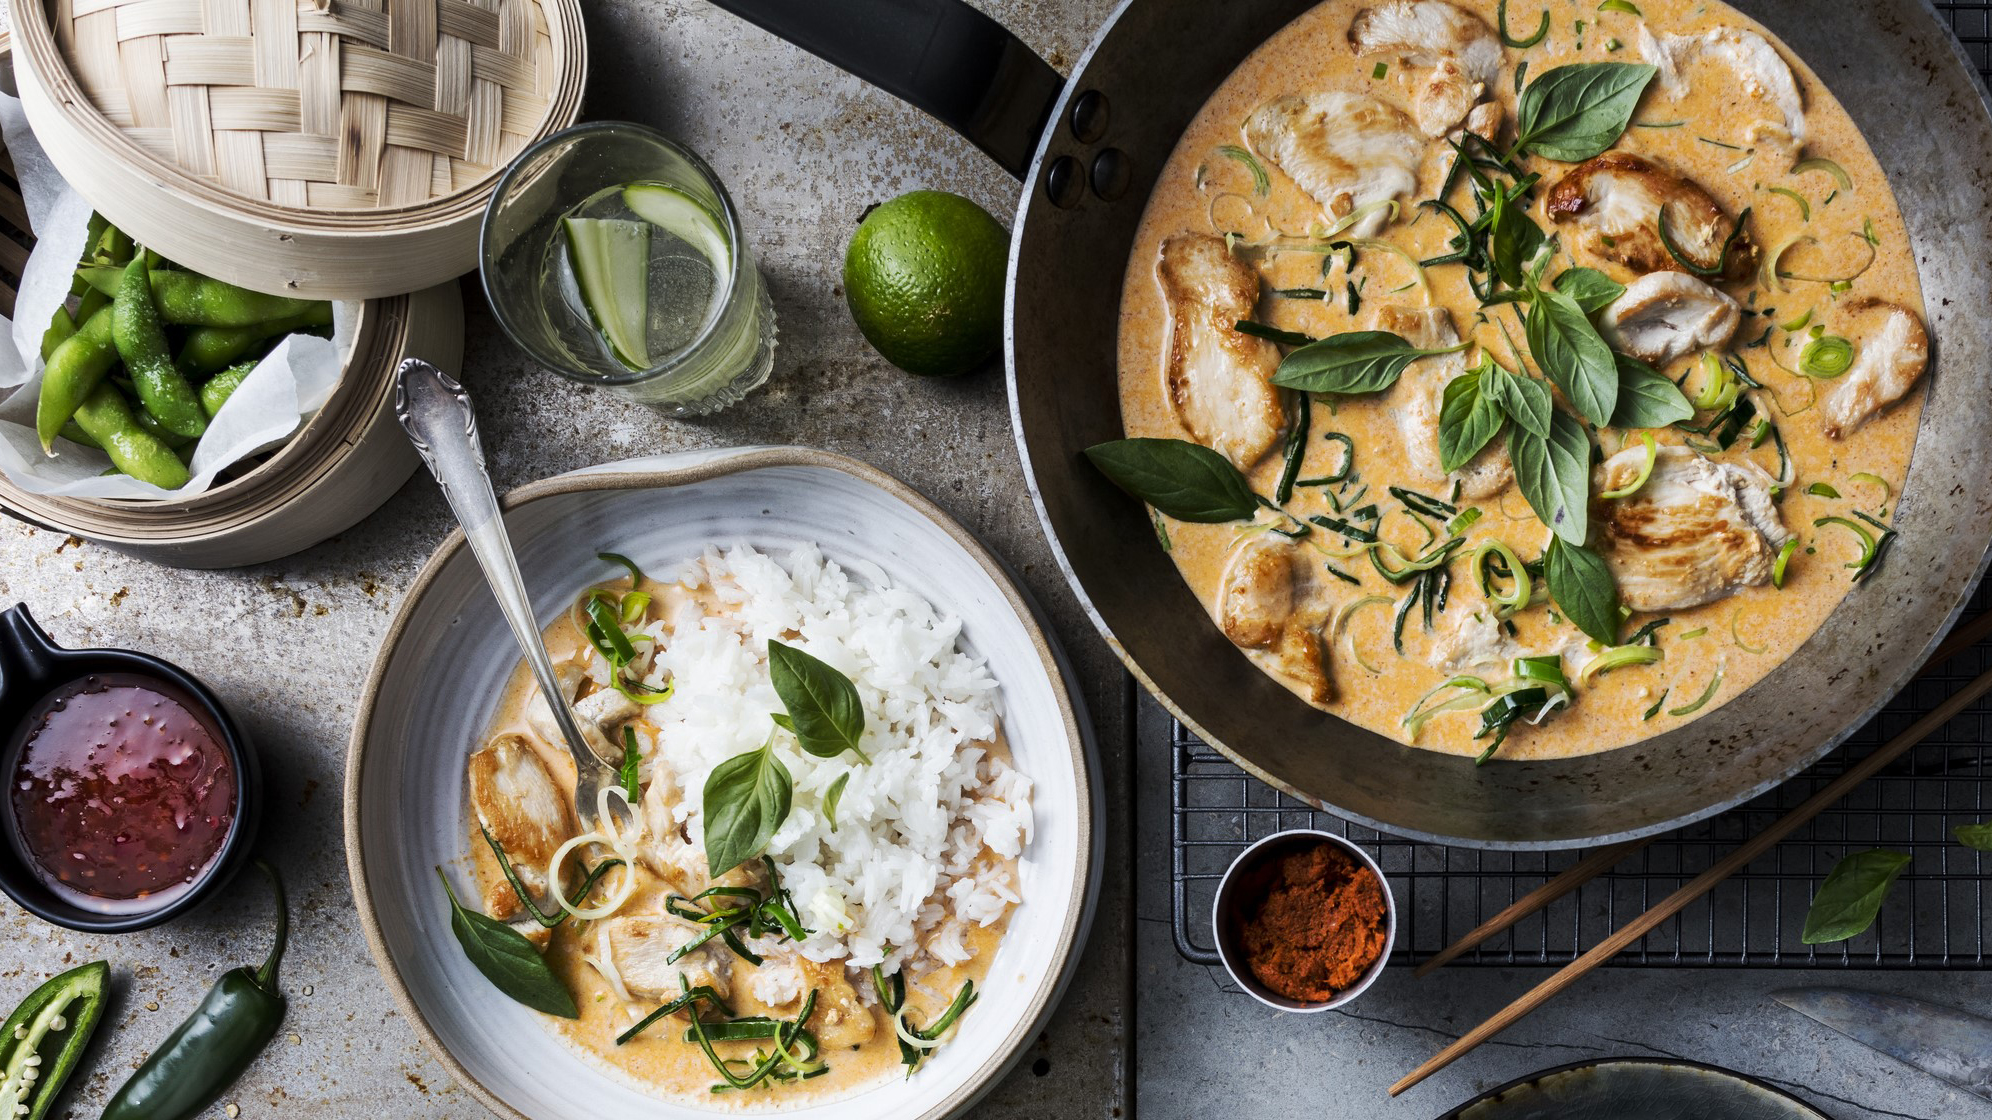 Kylling red curry med kokosmelk